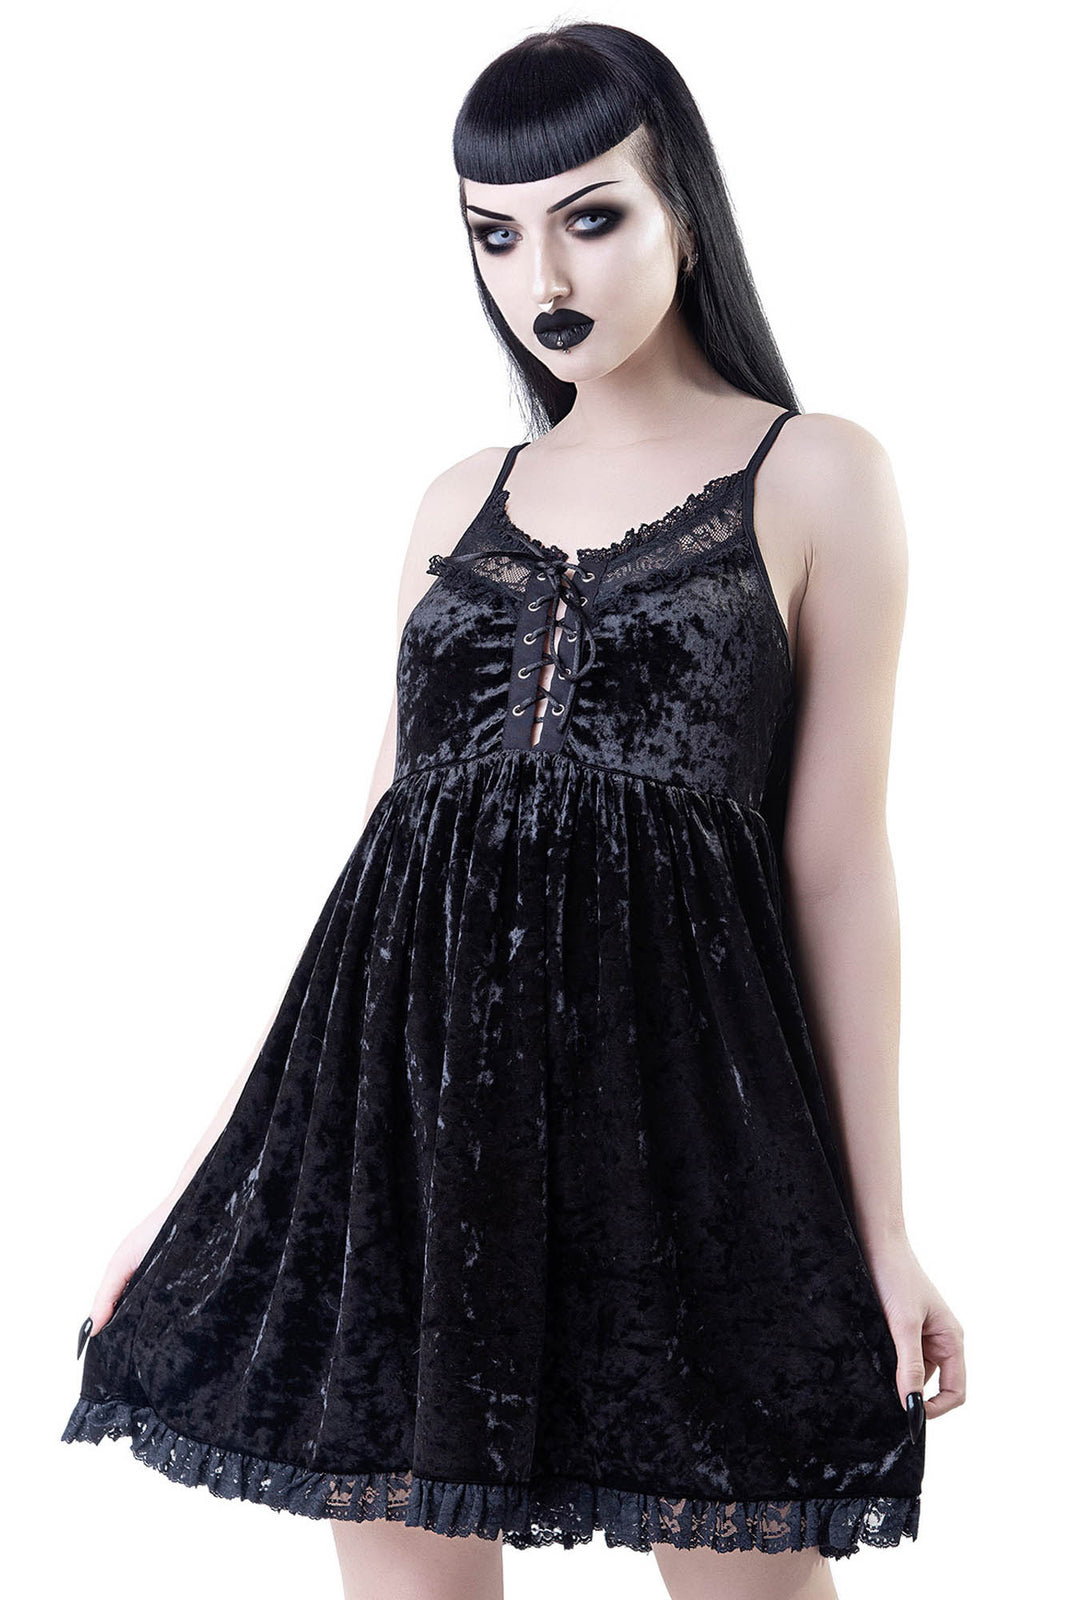 Ashbury's Angel Velvet Dress